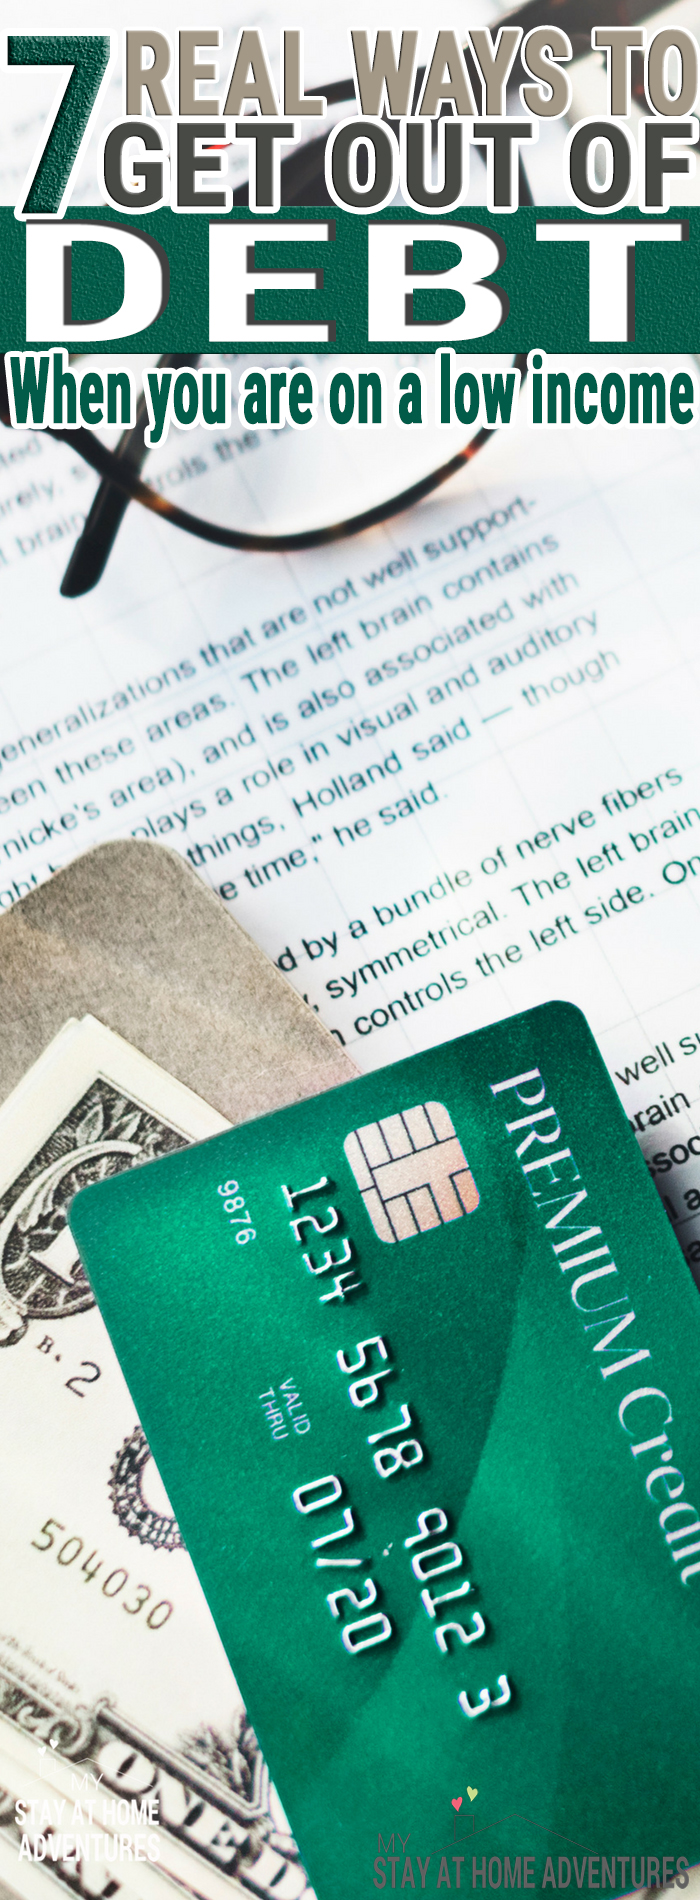 Having a low income and debt its rough. Learn 7 ways to get out of debt on a low income and create good financial habits in the process. Getting out of debt regardless of income is possible all you need to do is follow this steps.